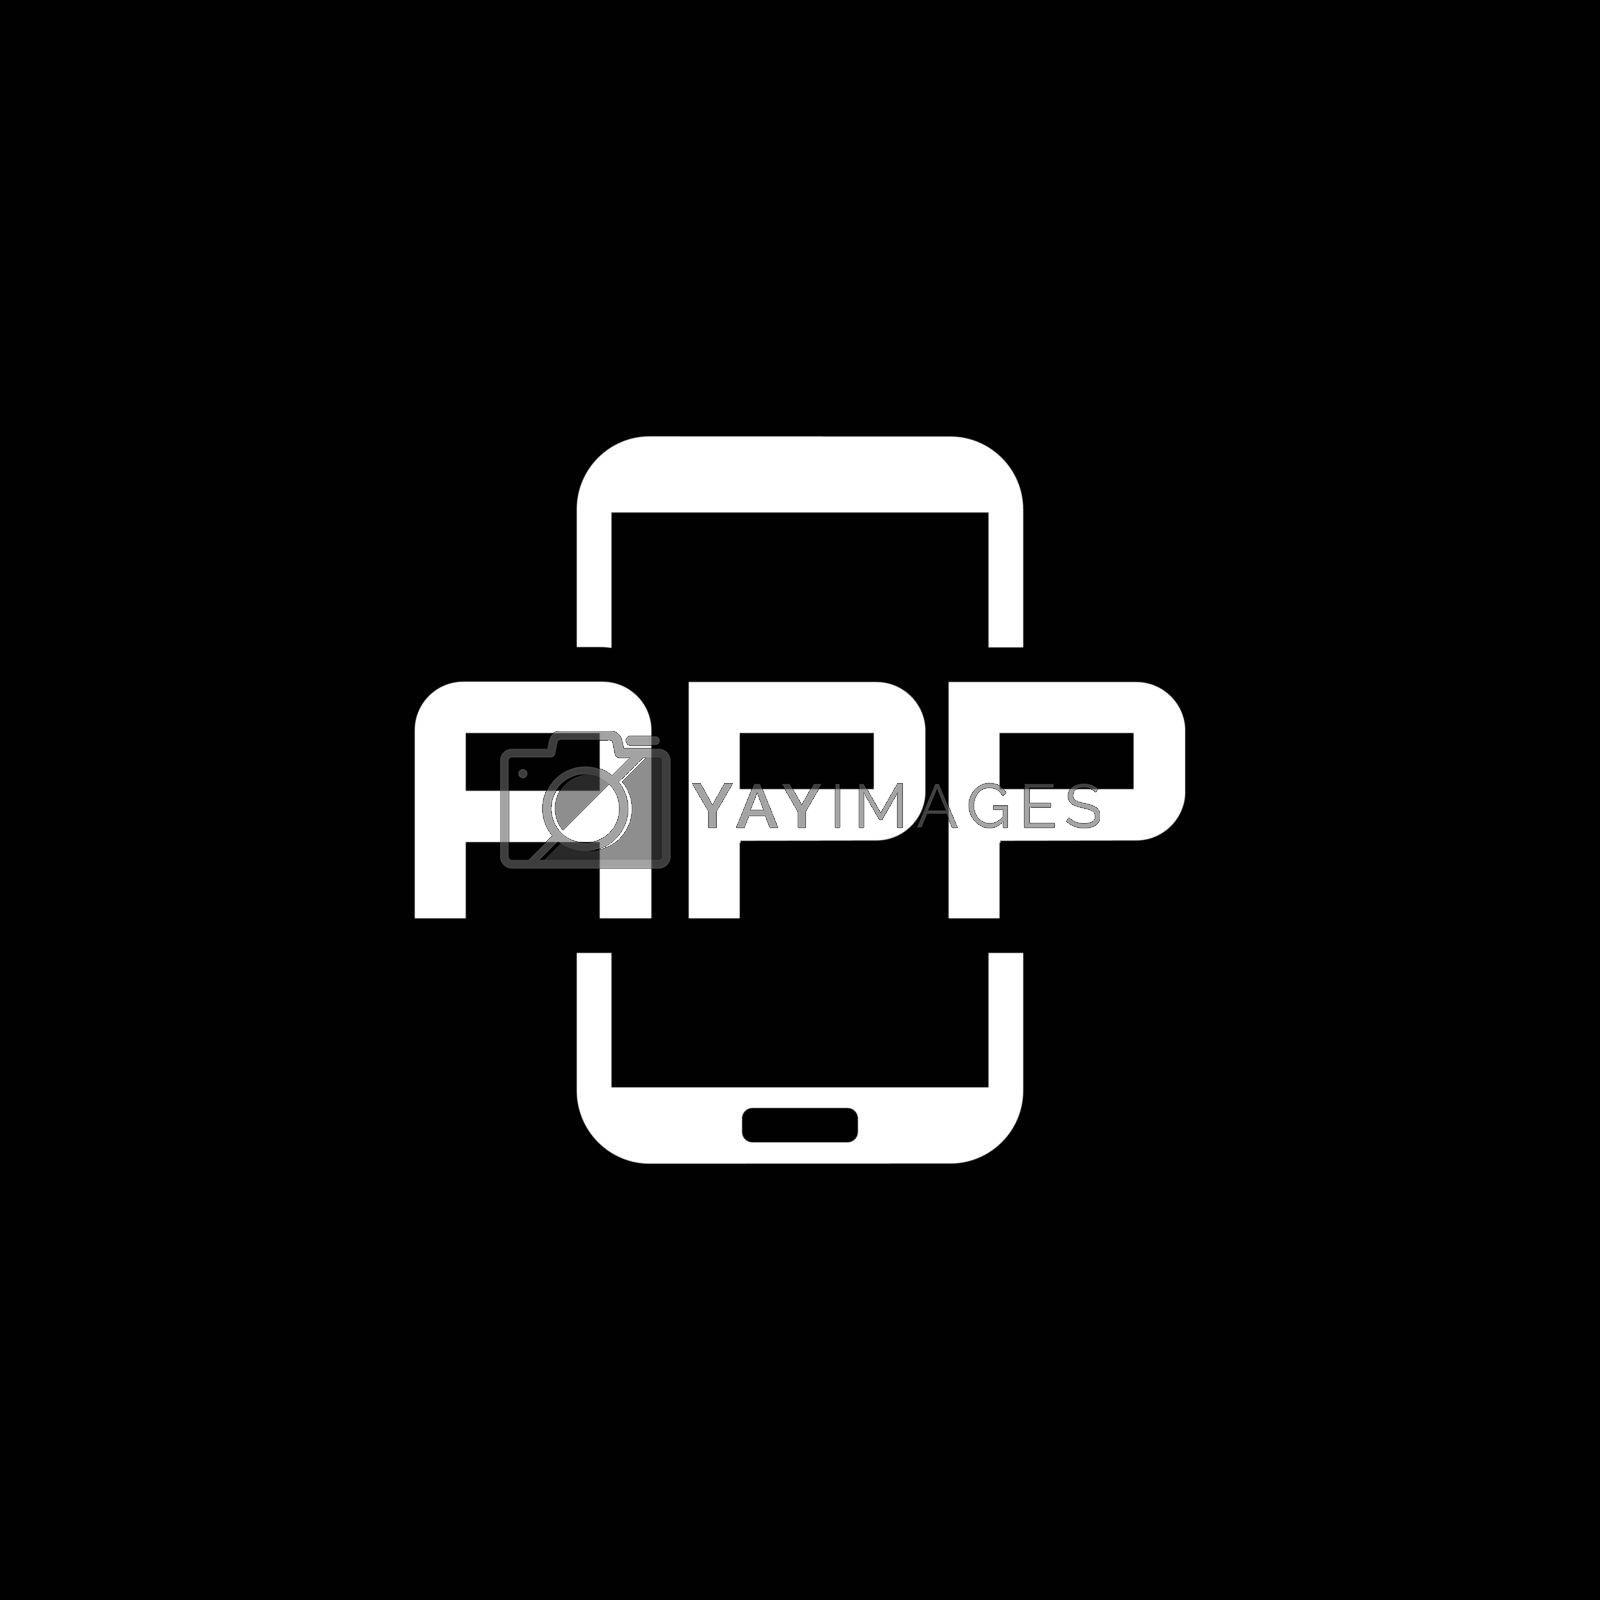 Mobile Application Icon. Flat Design. Mobile Devices and Services Concept. Isolated Illustration.